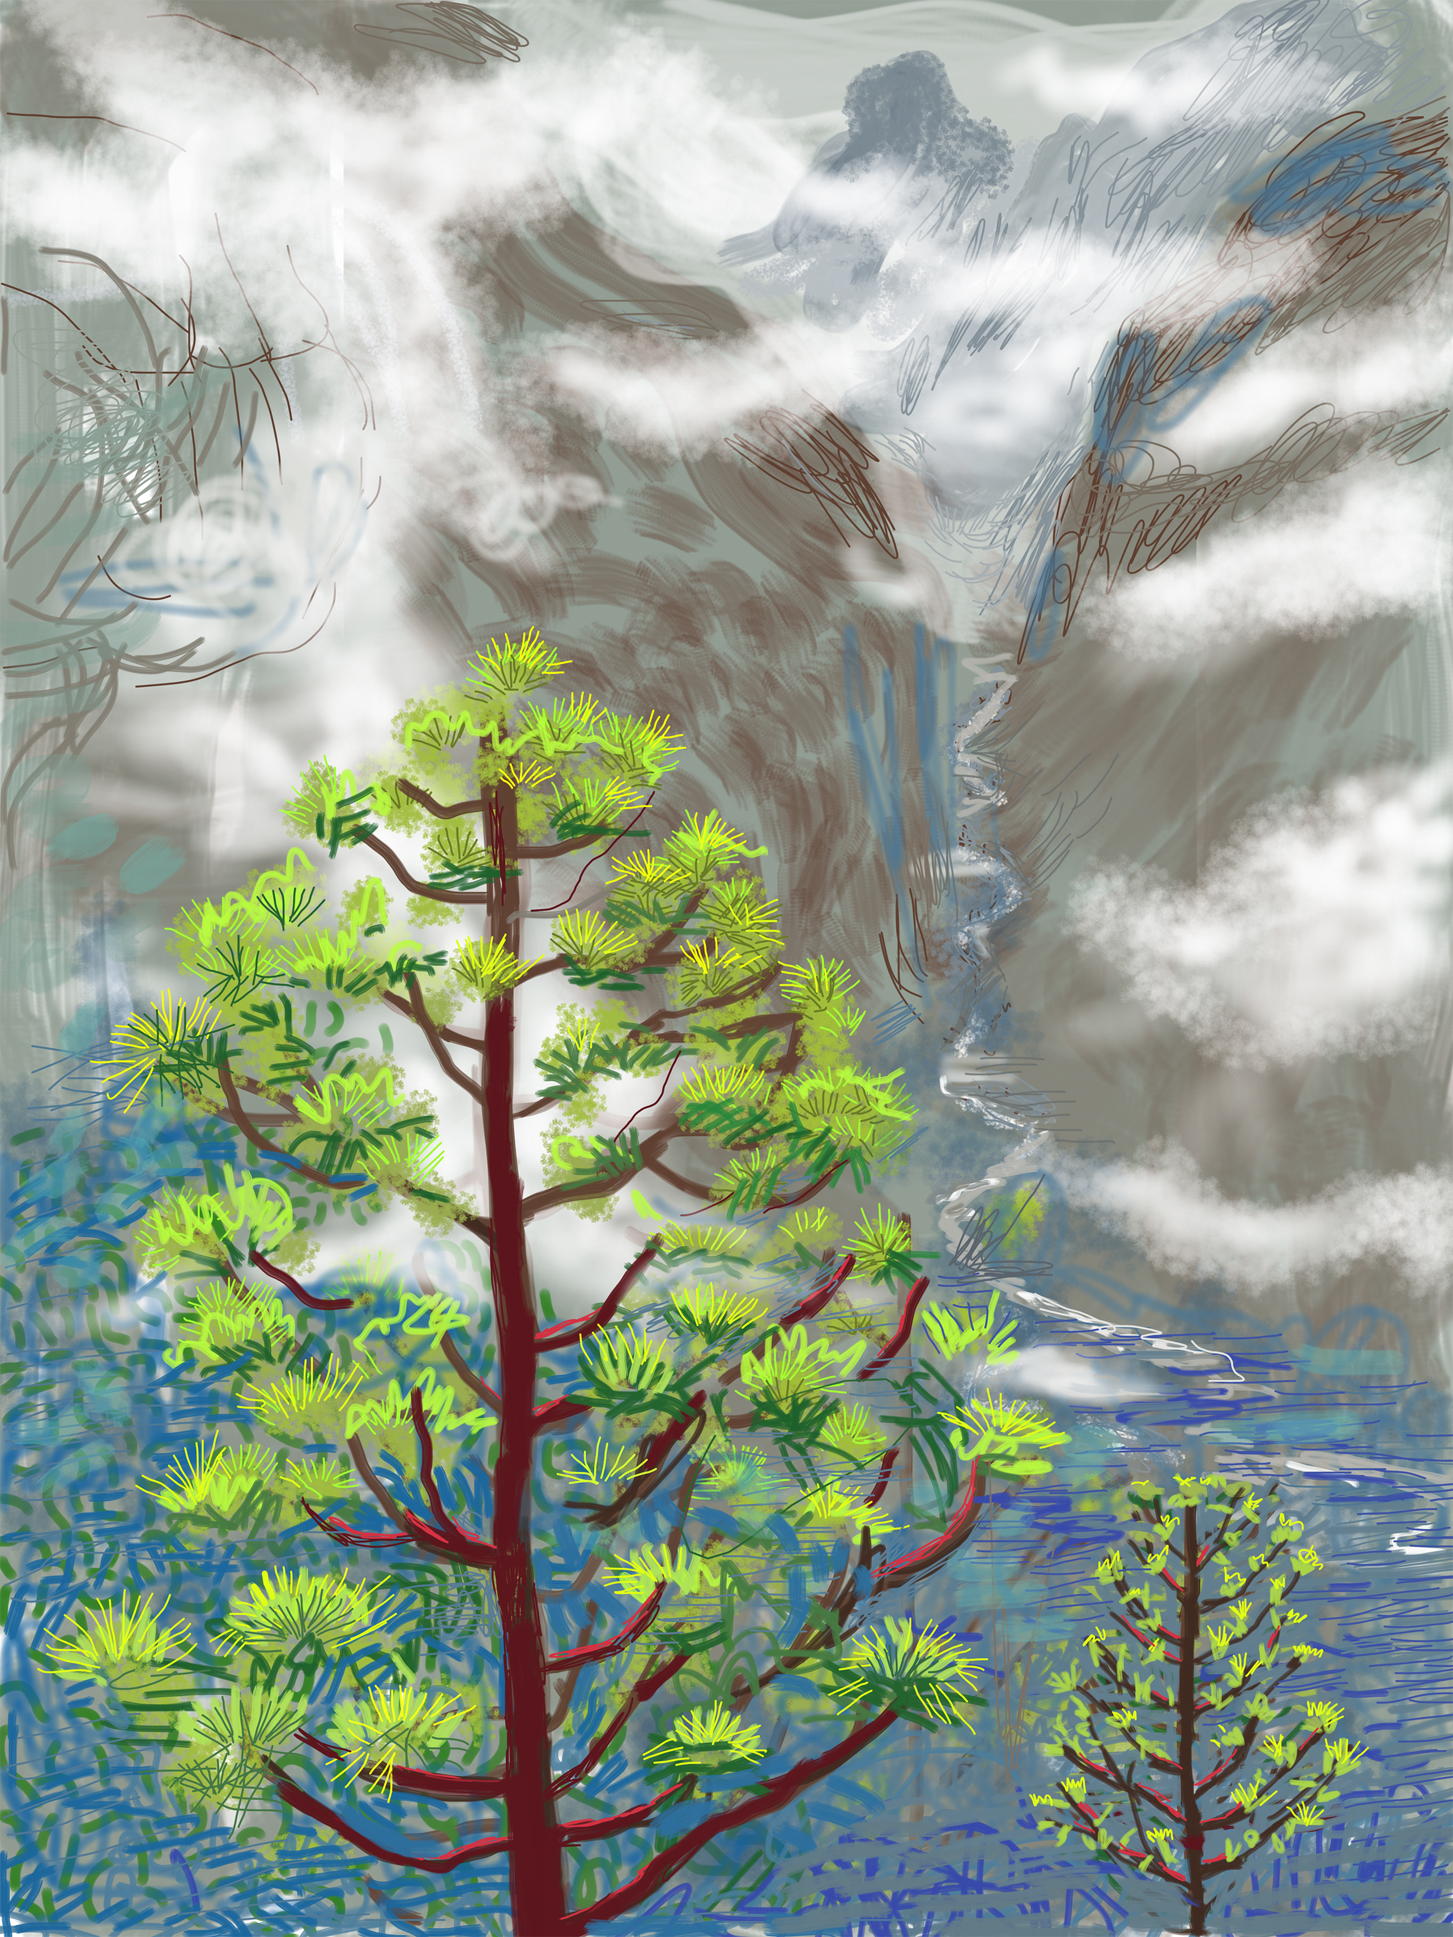 David Hockney, Yosemite I, October 5th 2011, © David Hockney,  courtesy of the artist and LA Louver.